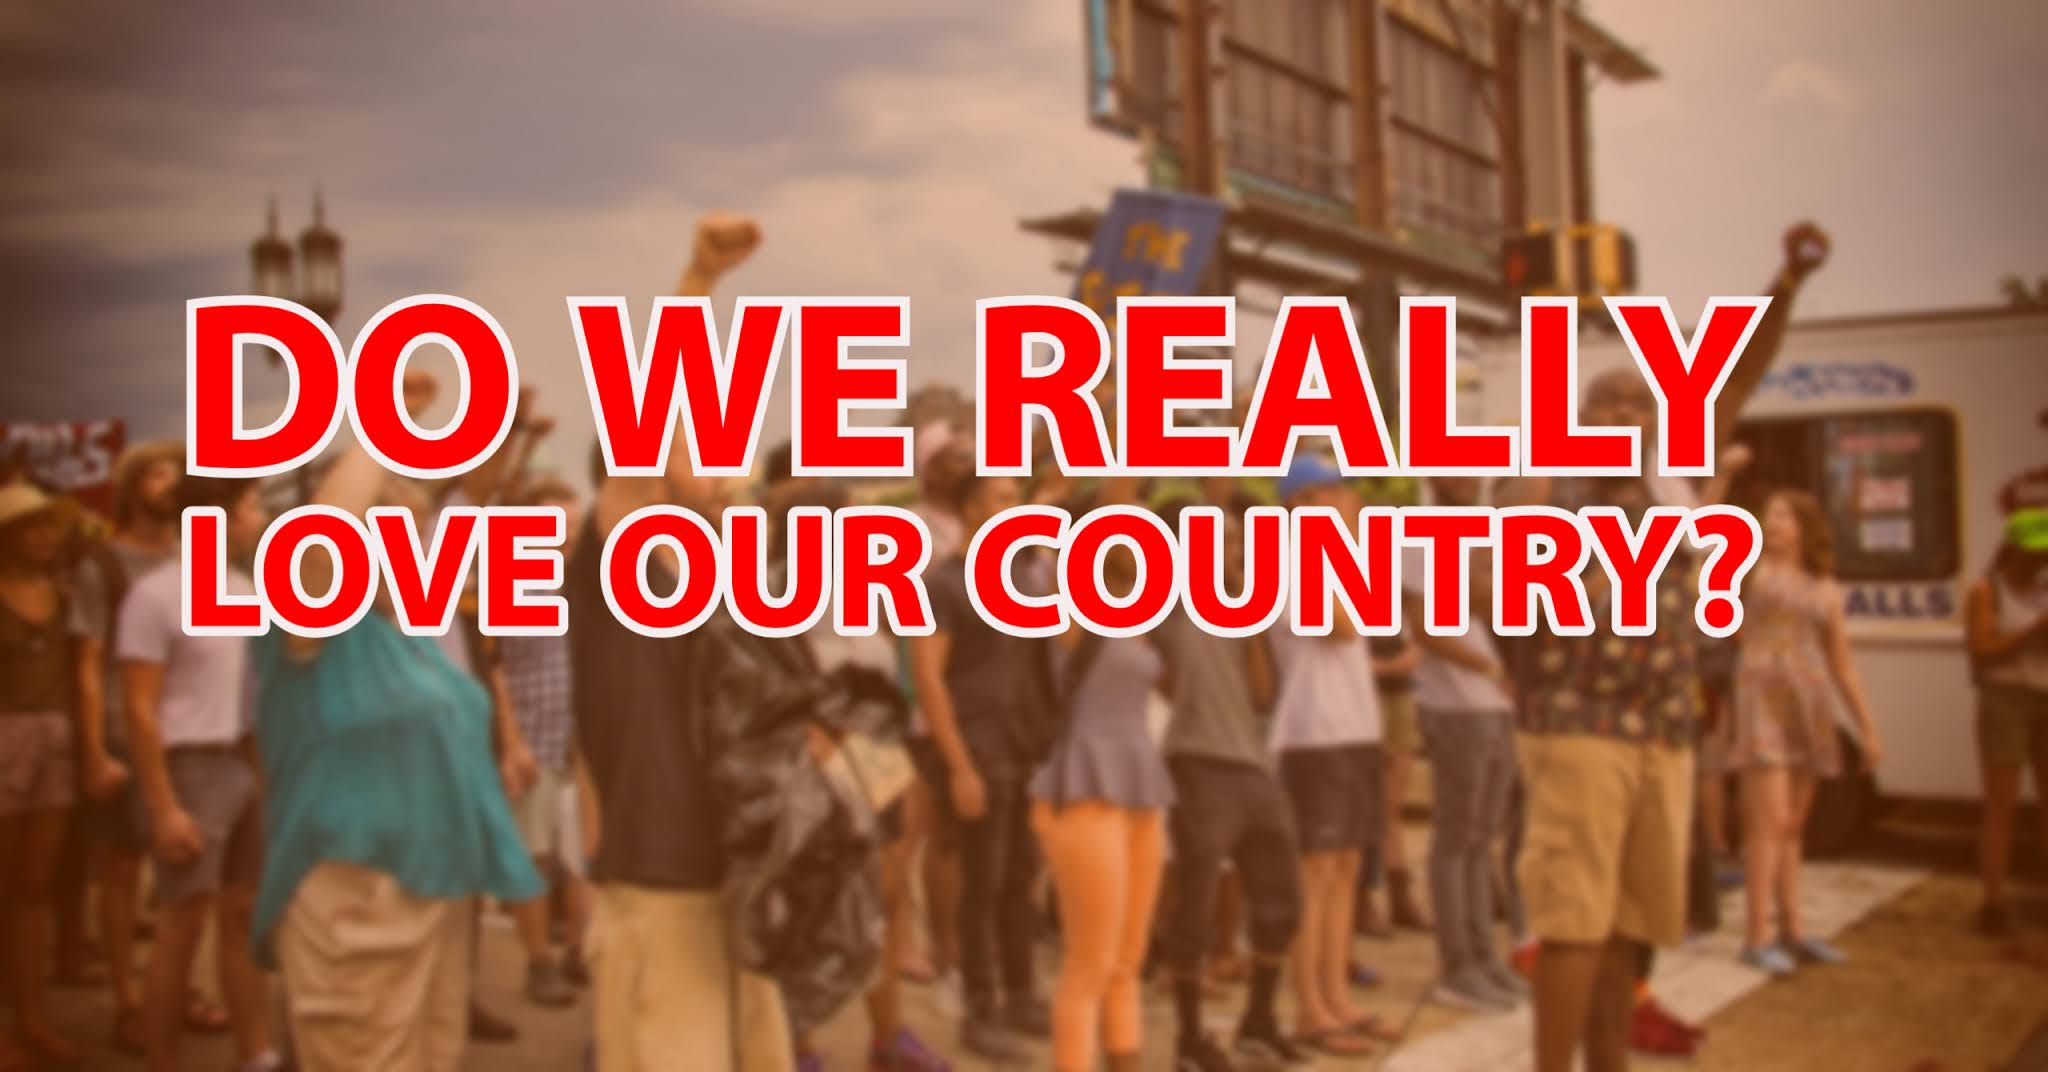 Do We Really Love Our Country?